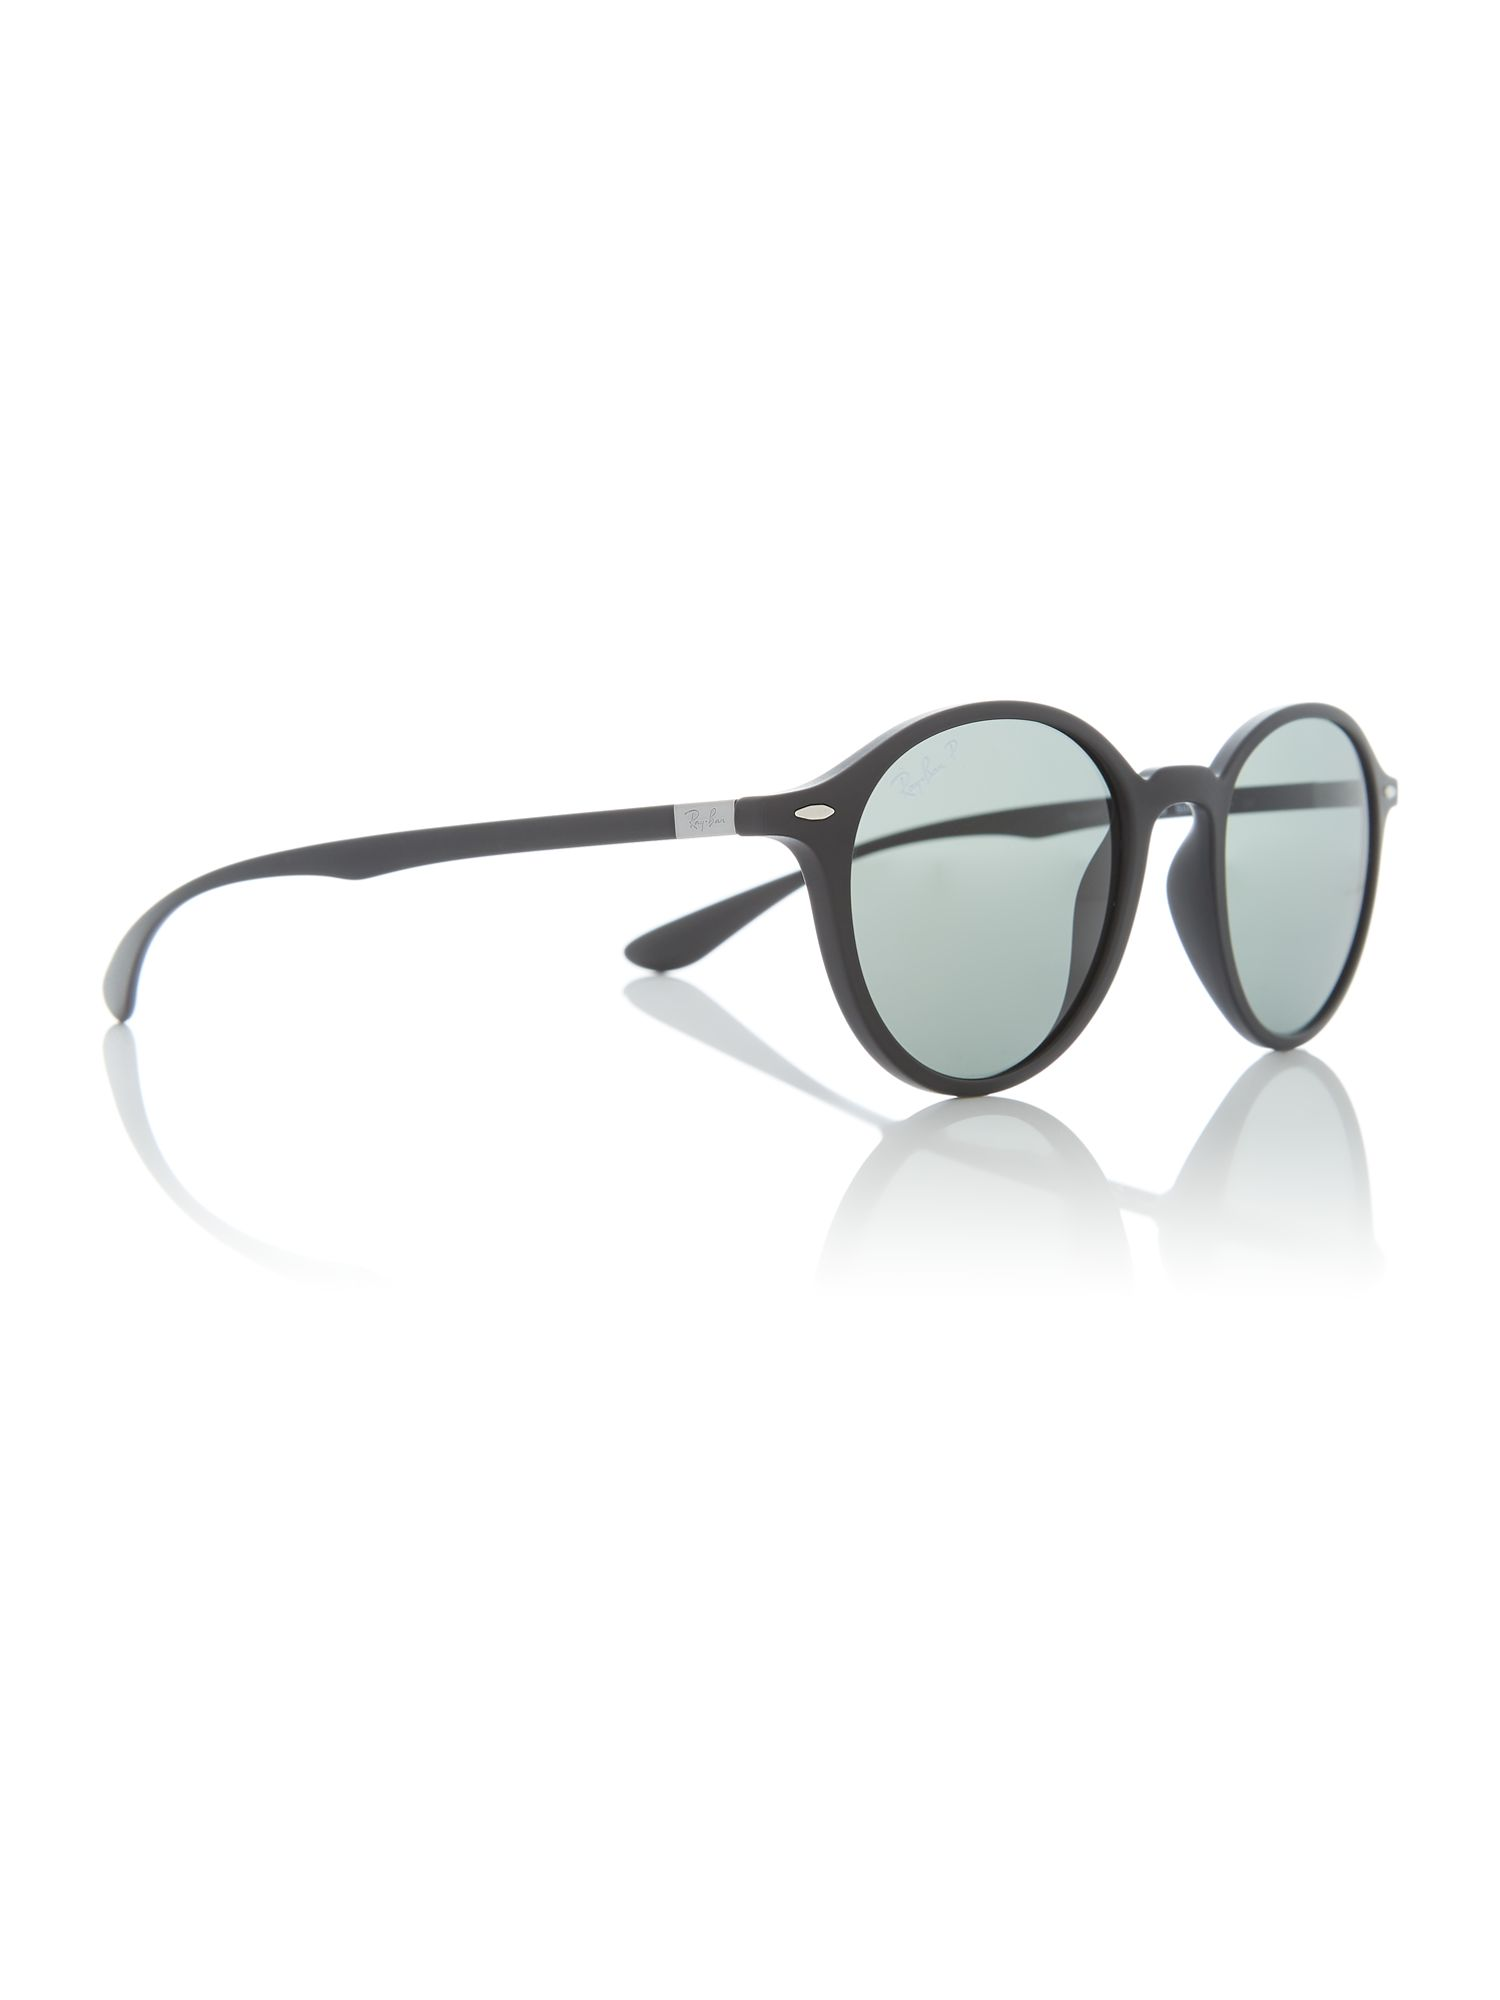 ray ban round sunglasses at house of fraser Ray Ban Round Classic ray ban black rb4237 round sunglasses